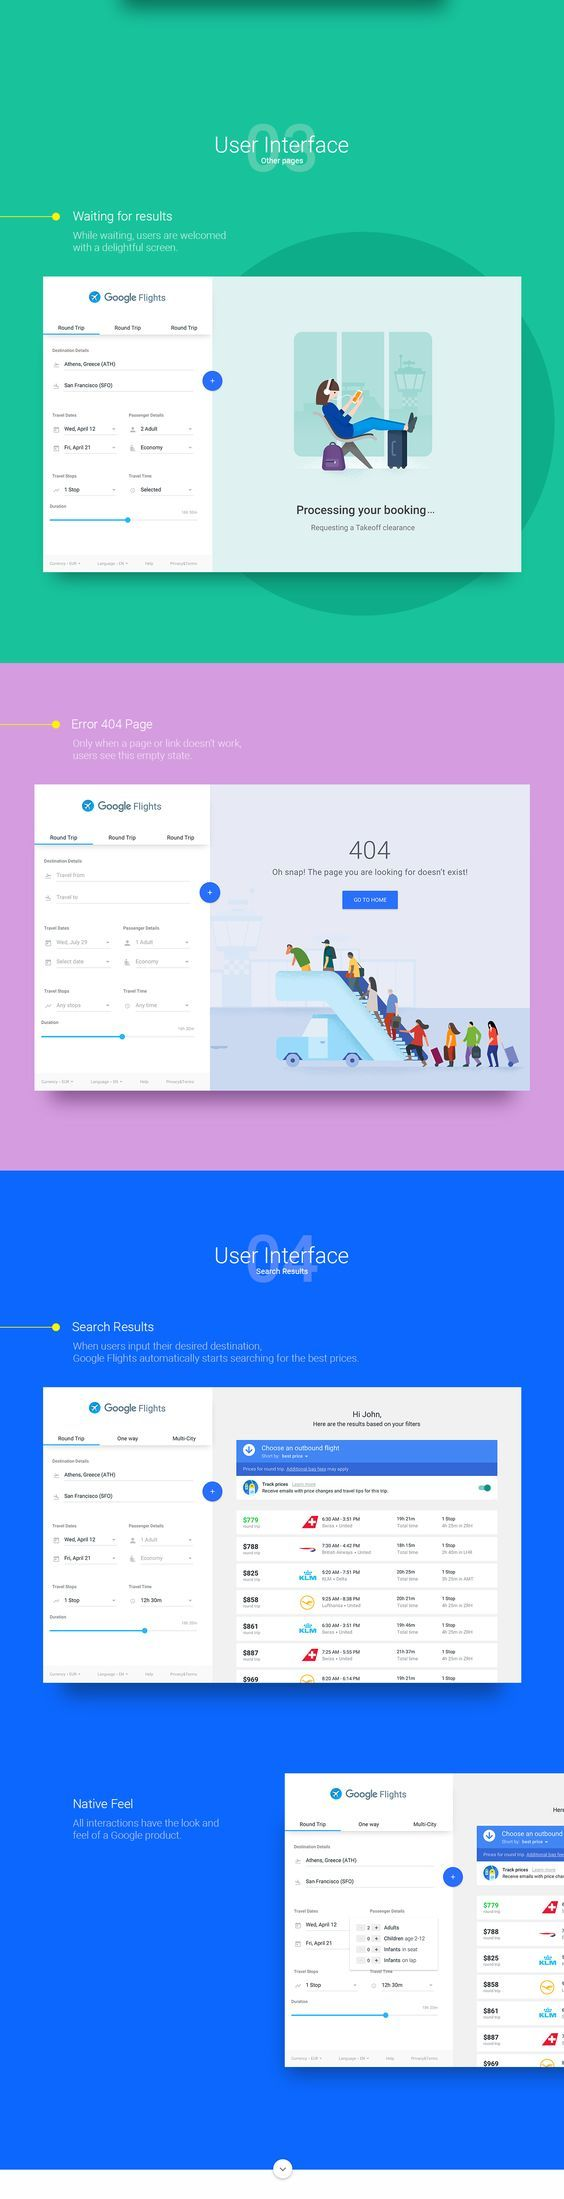 Google Flights is an online flight booking service which facilitates the purchase of airline tickets through third party suppliers.I wanted to re-imagine this product with the look and feel of the existing Google UI patterns and aesthetics. Credits: A…: